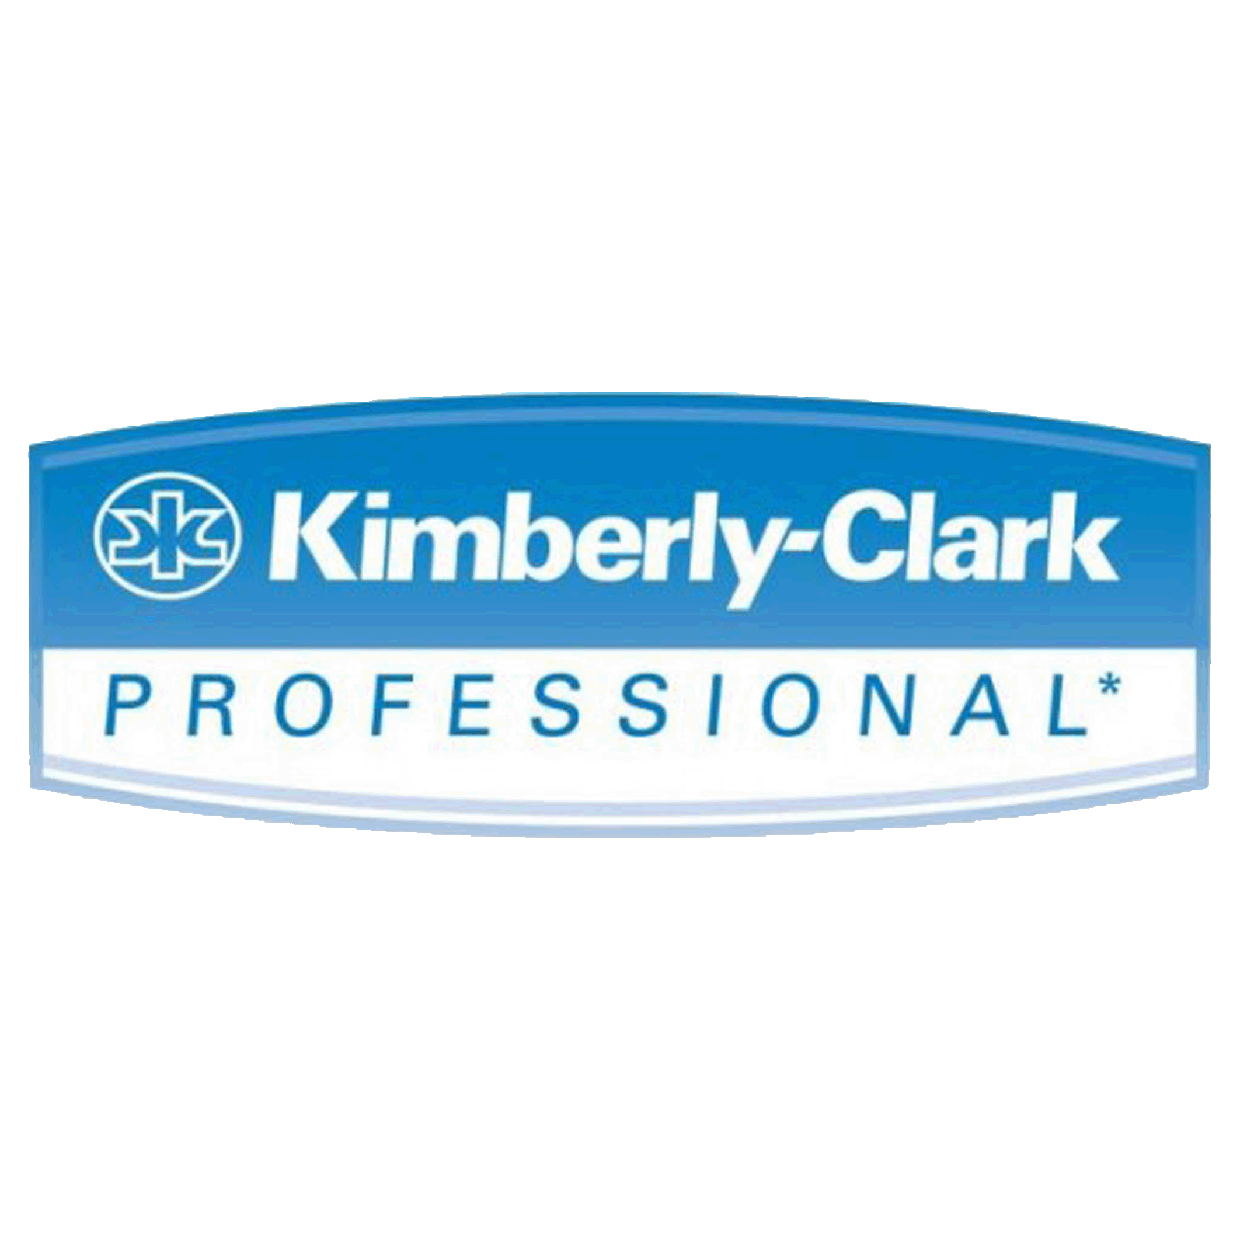 kimberly clark andean region Kimberly-clark junio de 2011 – octubre de 2015 (4 años 5 meses) bogota responsible for the analysis of business and financial projections of the baby & child care category of the andean region (bolivia, colombia, ecuador, peru and venezuela).